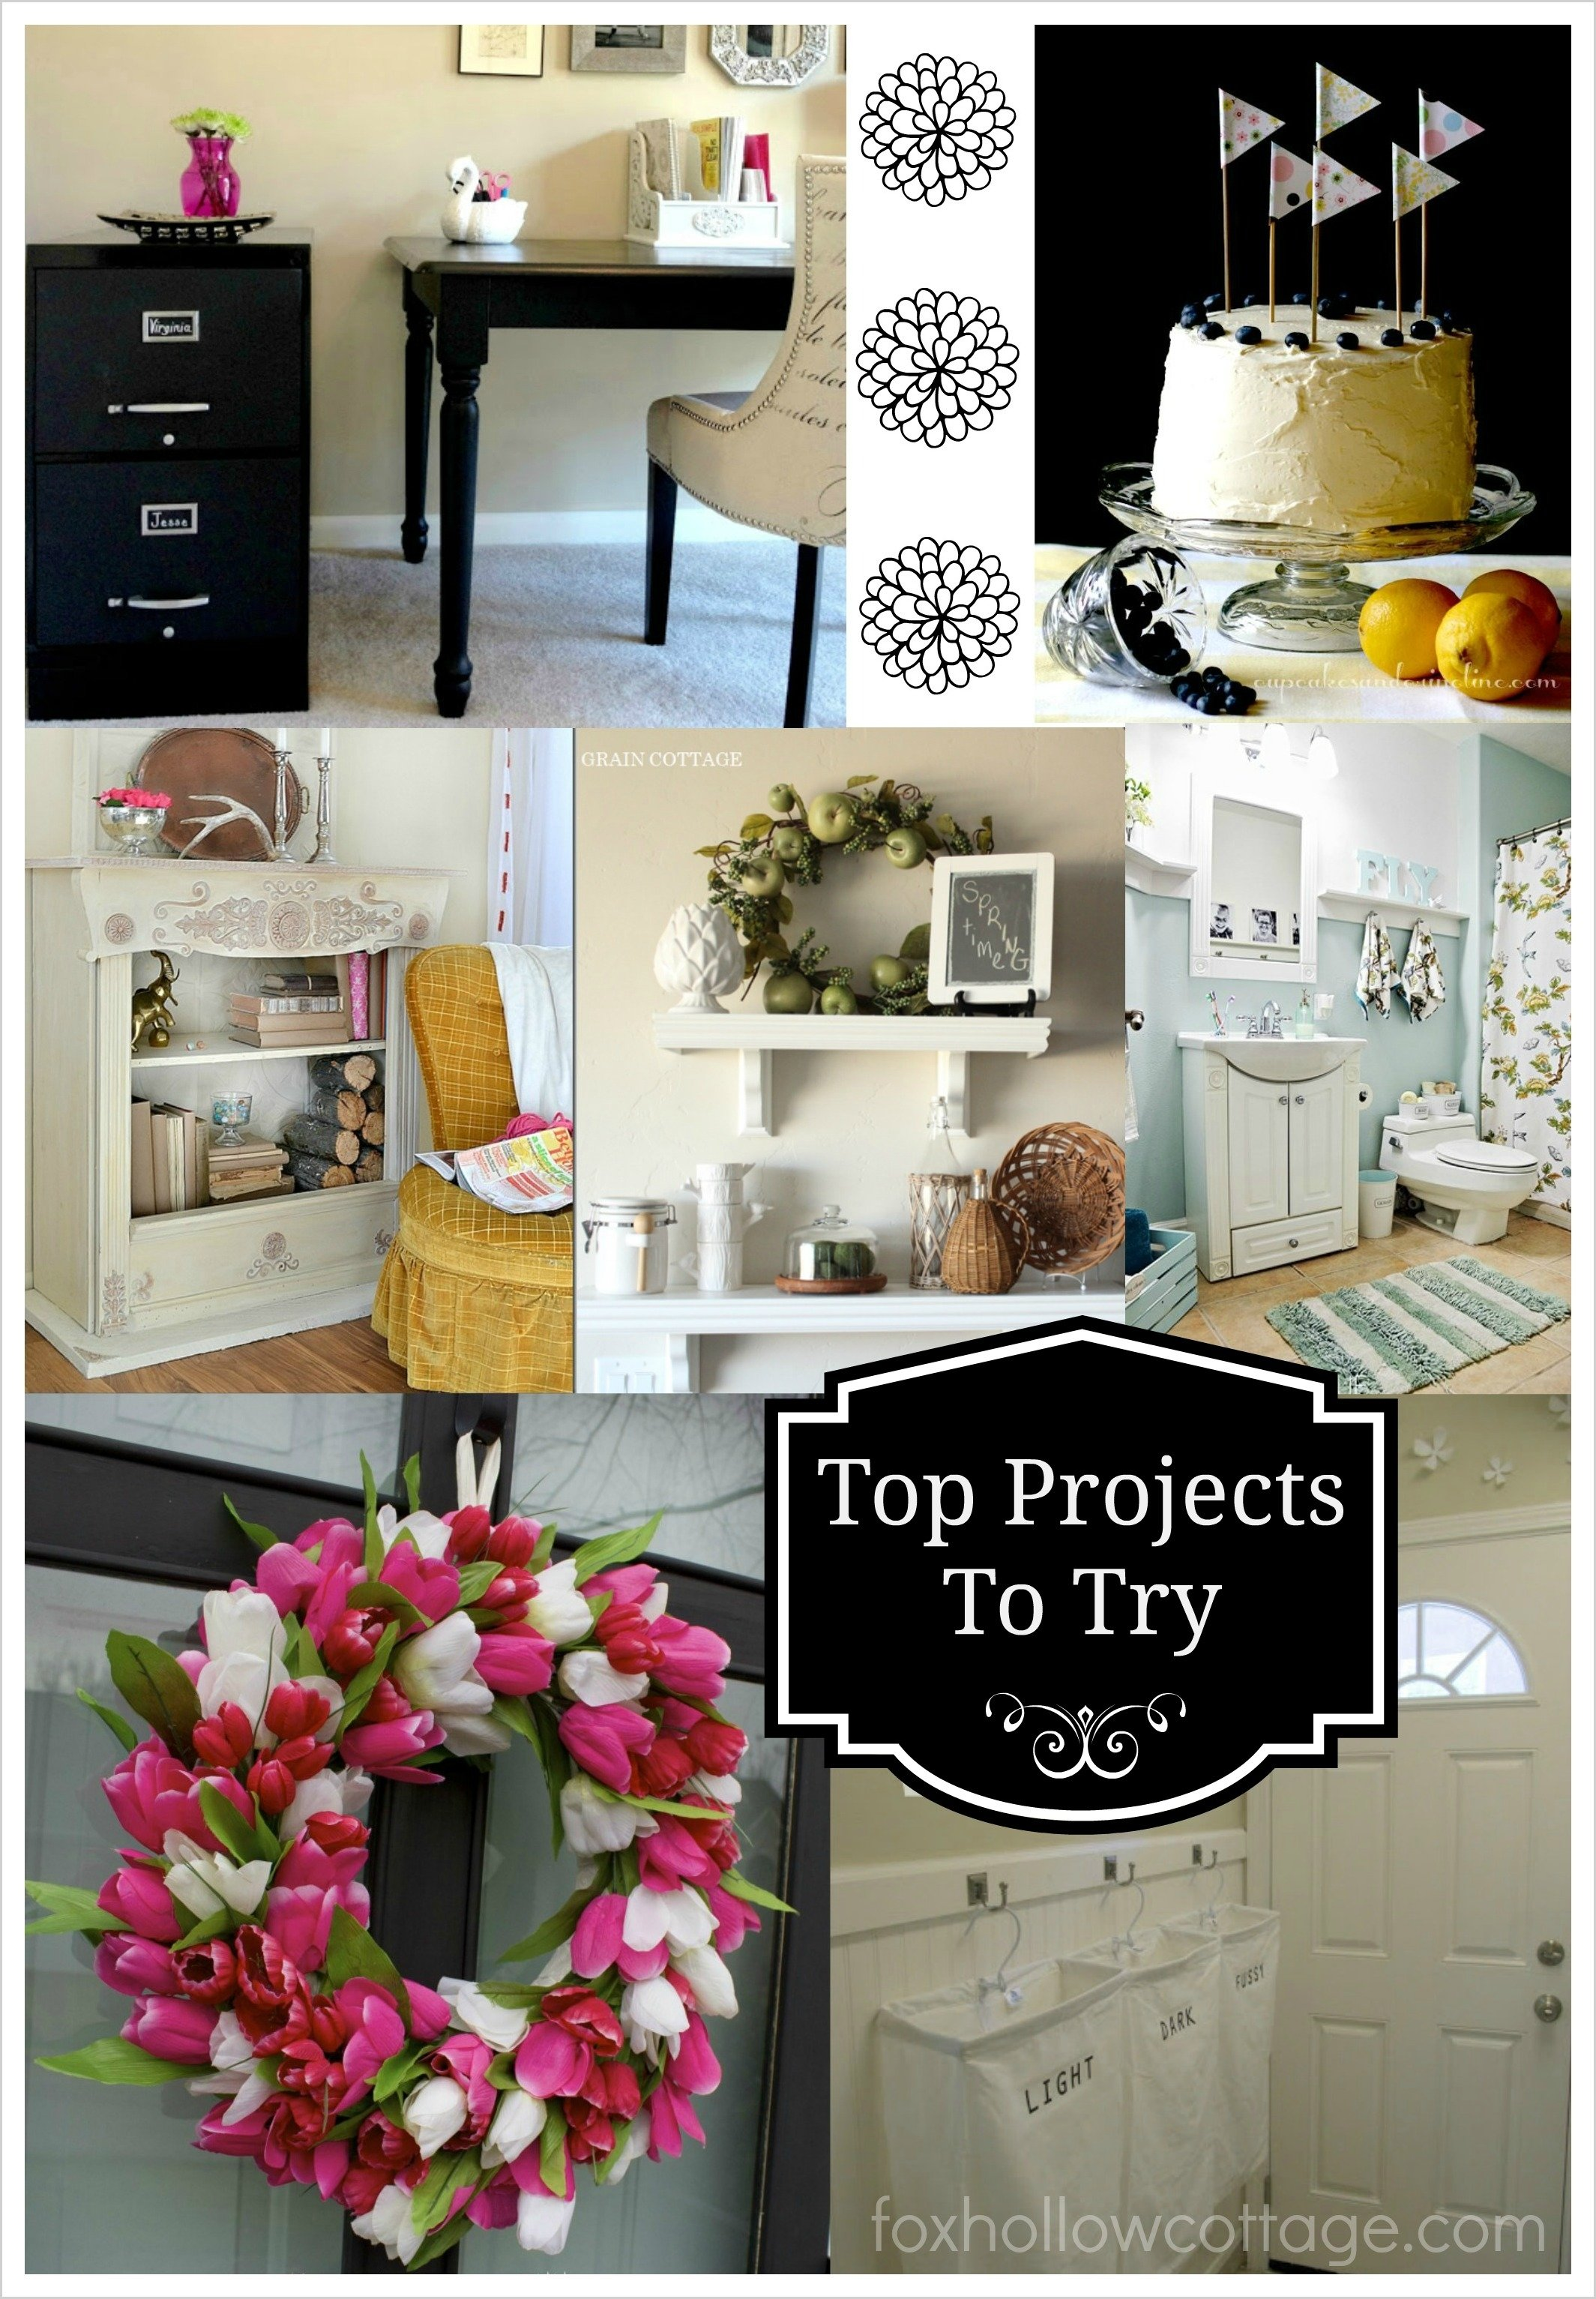 10 Stylish Pinterest Craft Ideas For Home best finest pinterest craft ideas for home decor 17 36642 2021